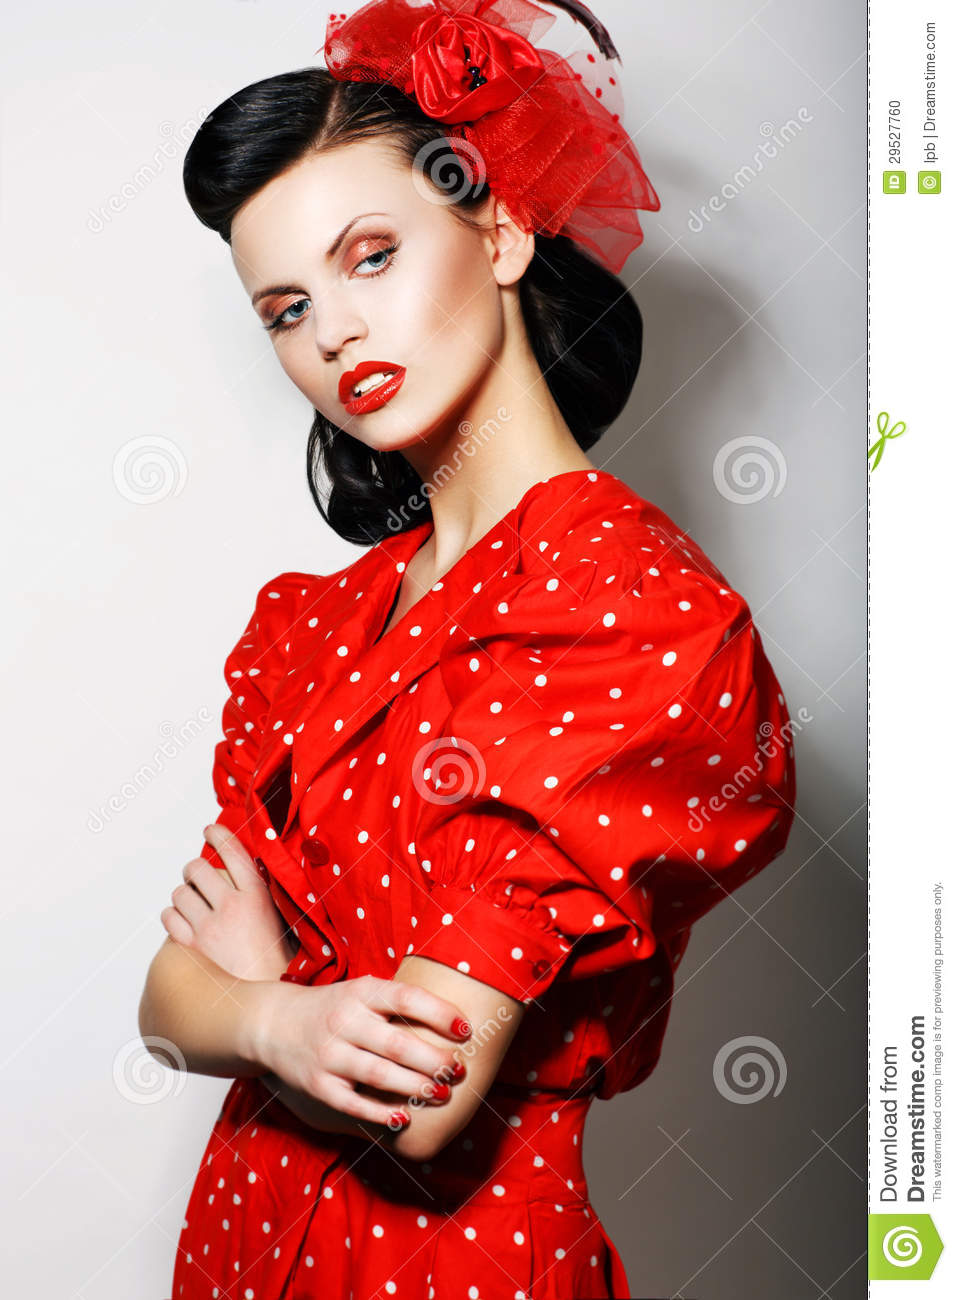 Refinement. Sophisticated Arrogant Woman in Red Polka Dot Dress with ...